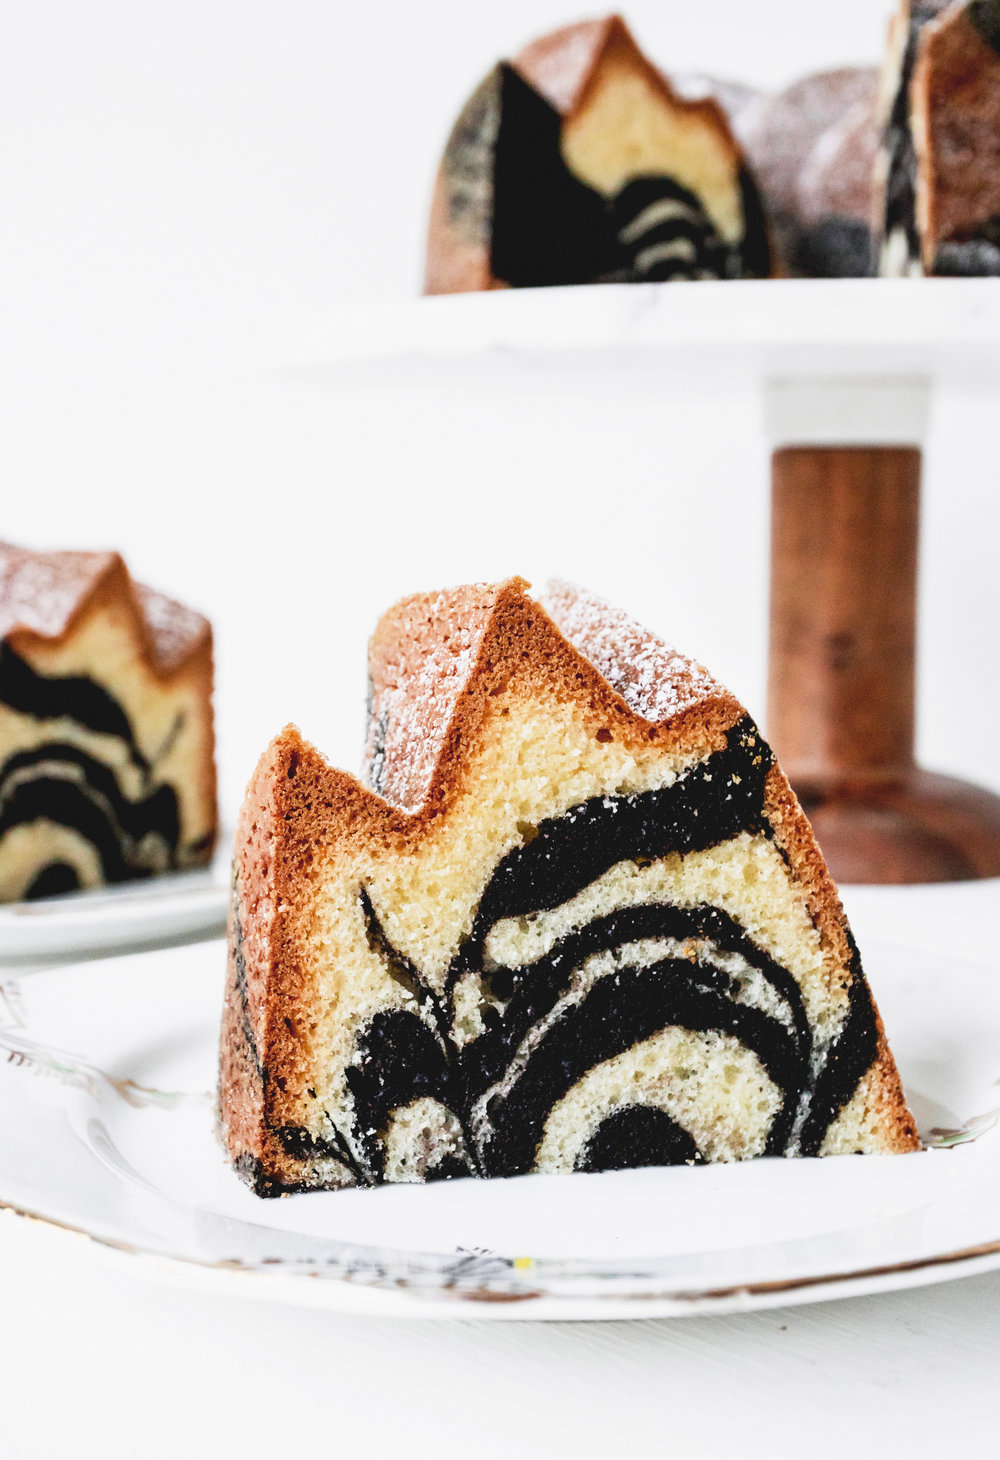 thermomix marble cake - Delicious Monster